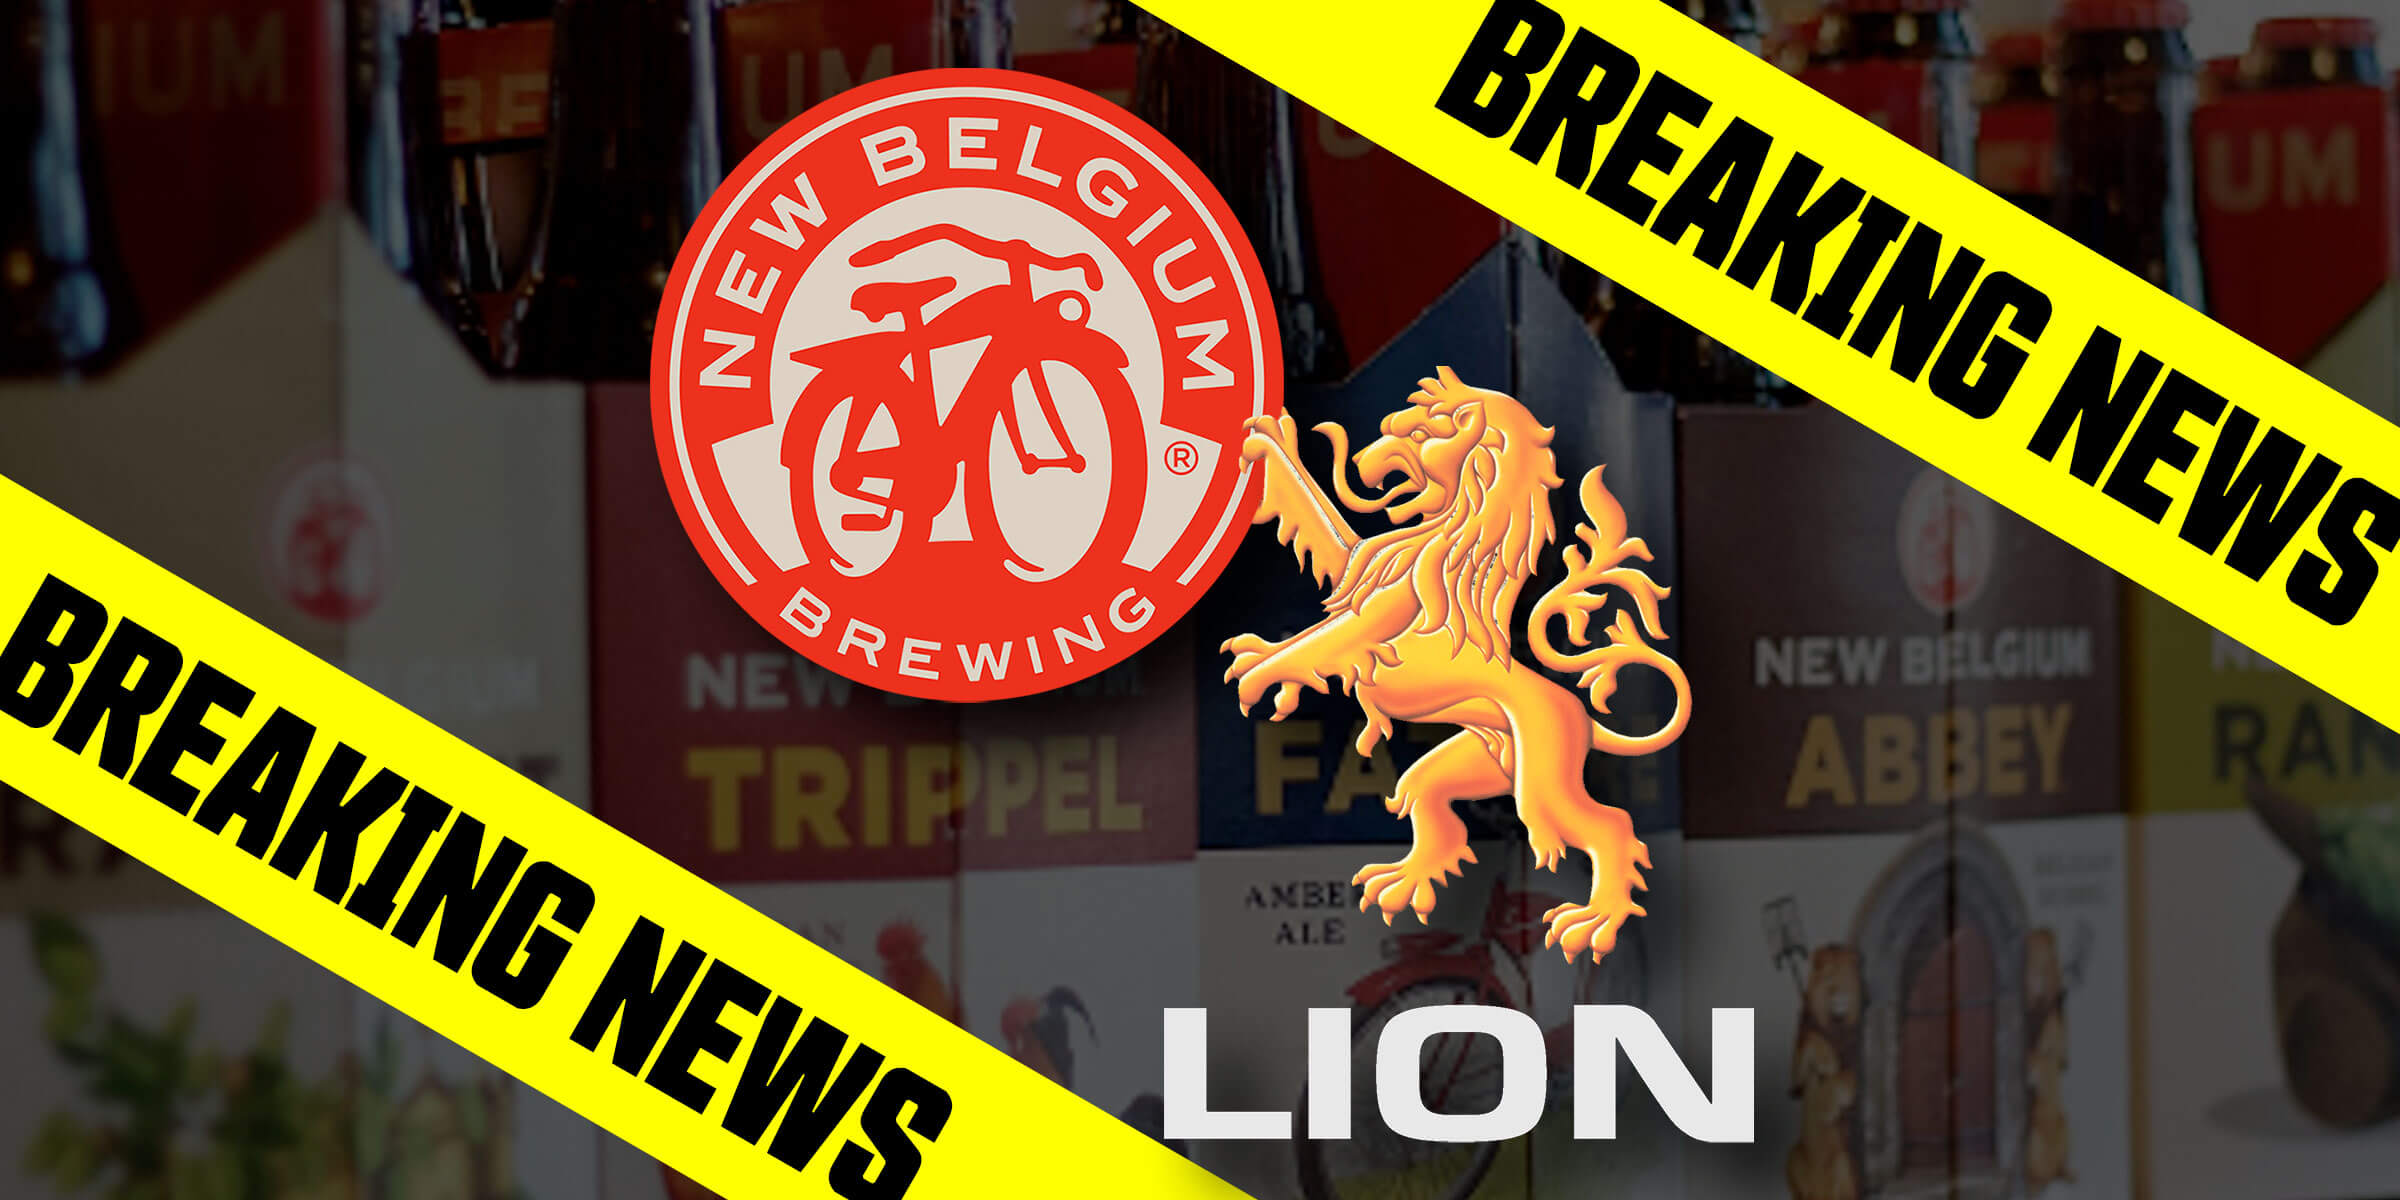 """Kirin-owned Lion Little World Beverages announced a """"definitive agreement"""" to acquire 100% of New Belgium Brewing Company in an all cash transaction."""